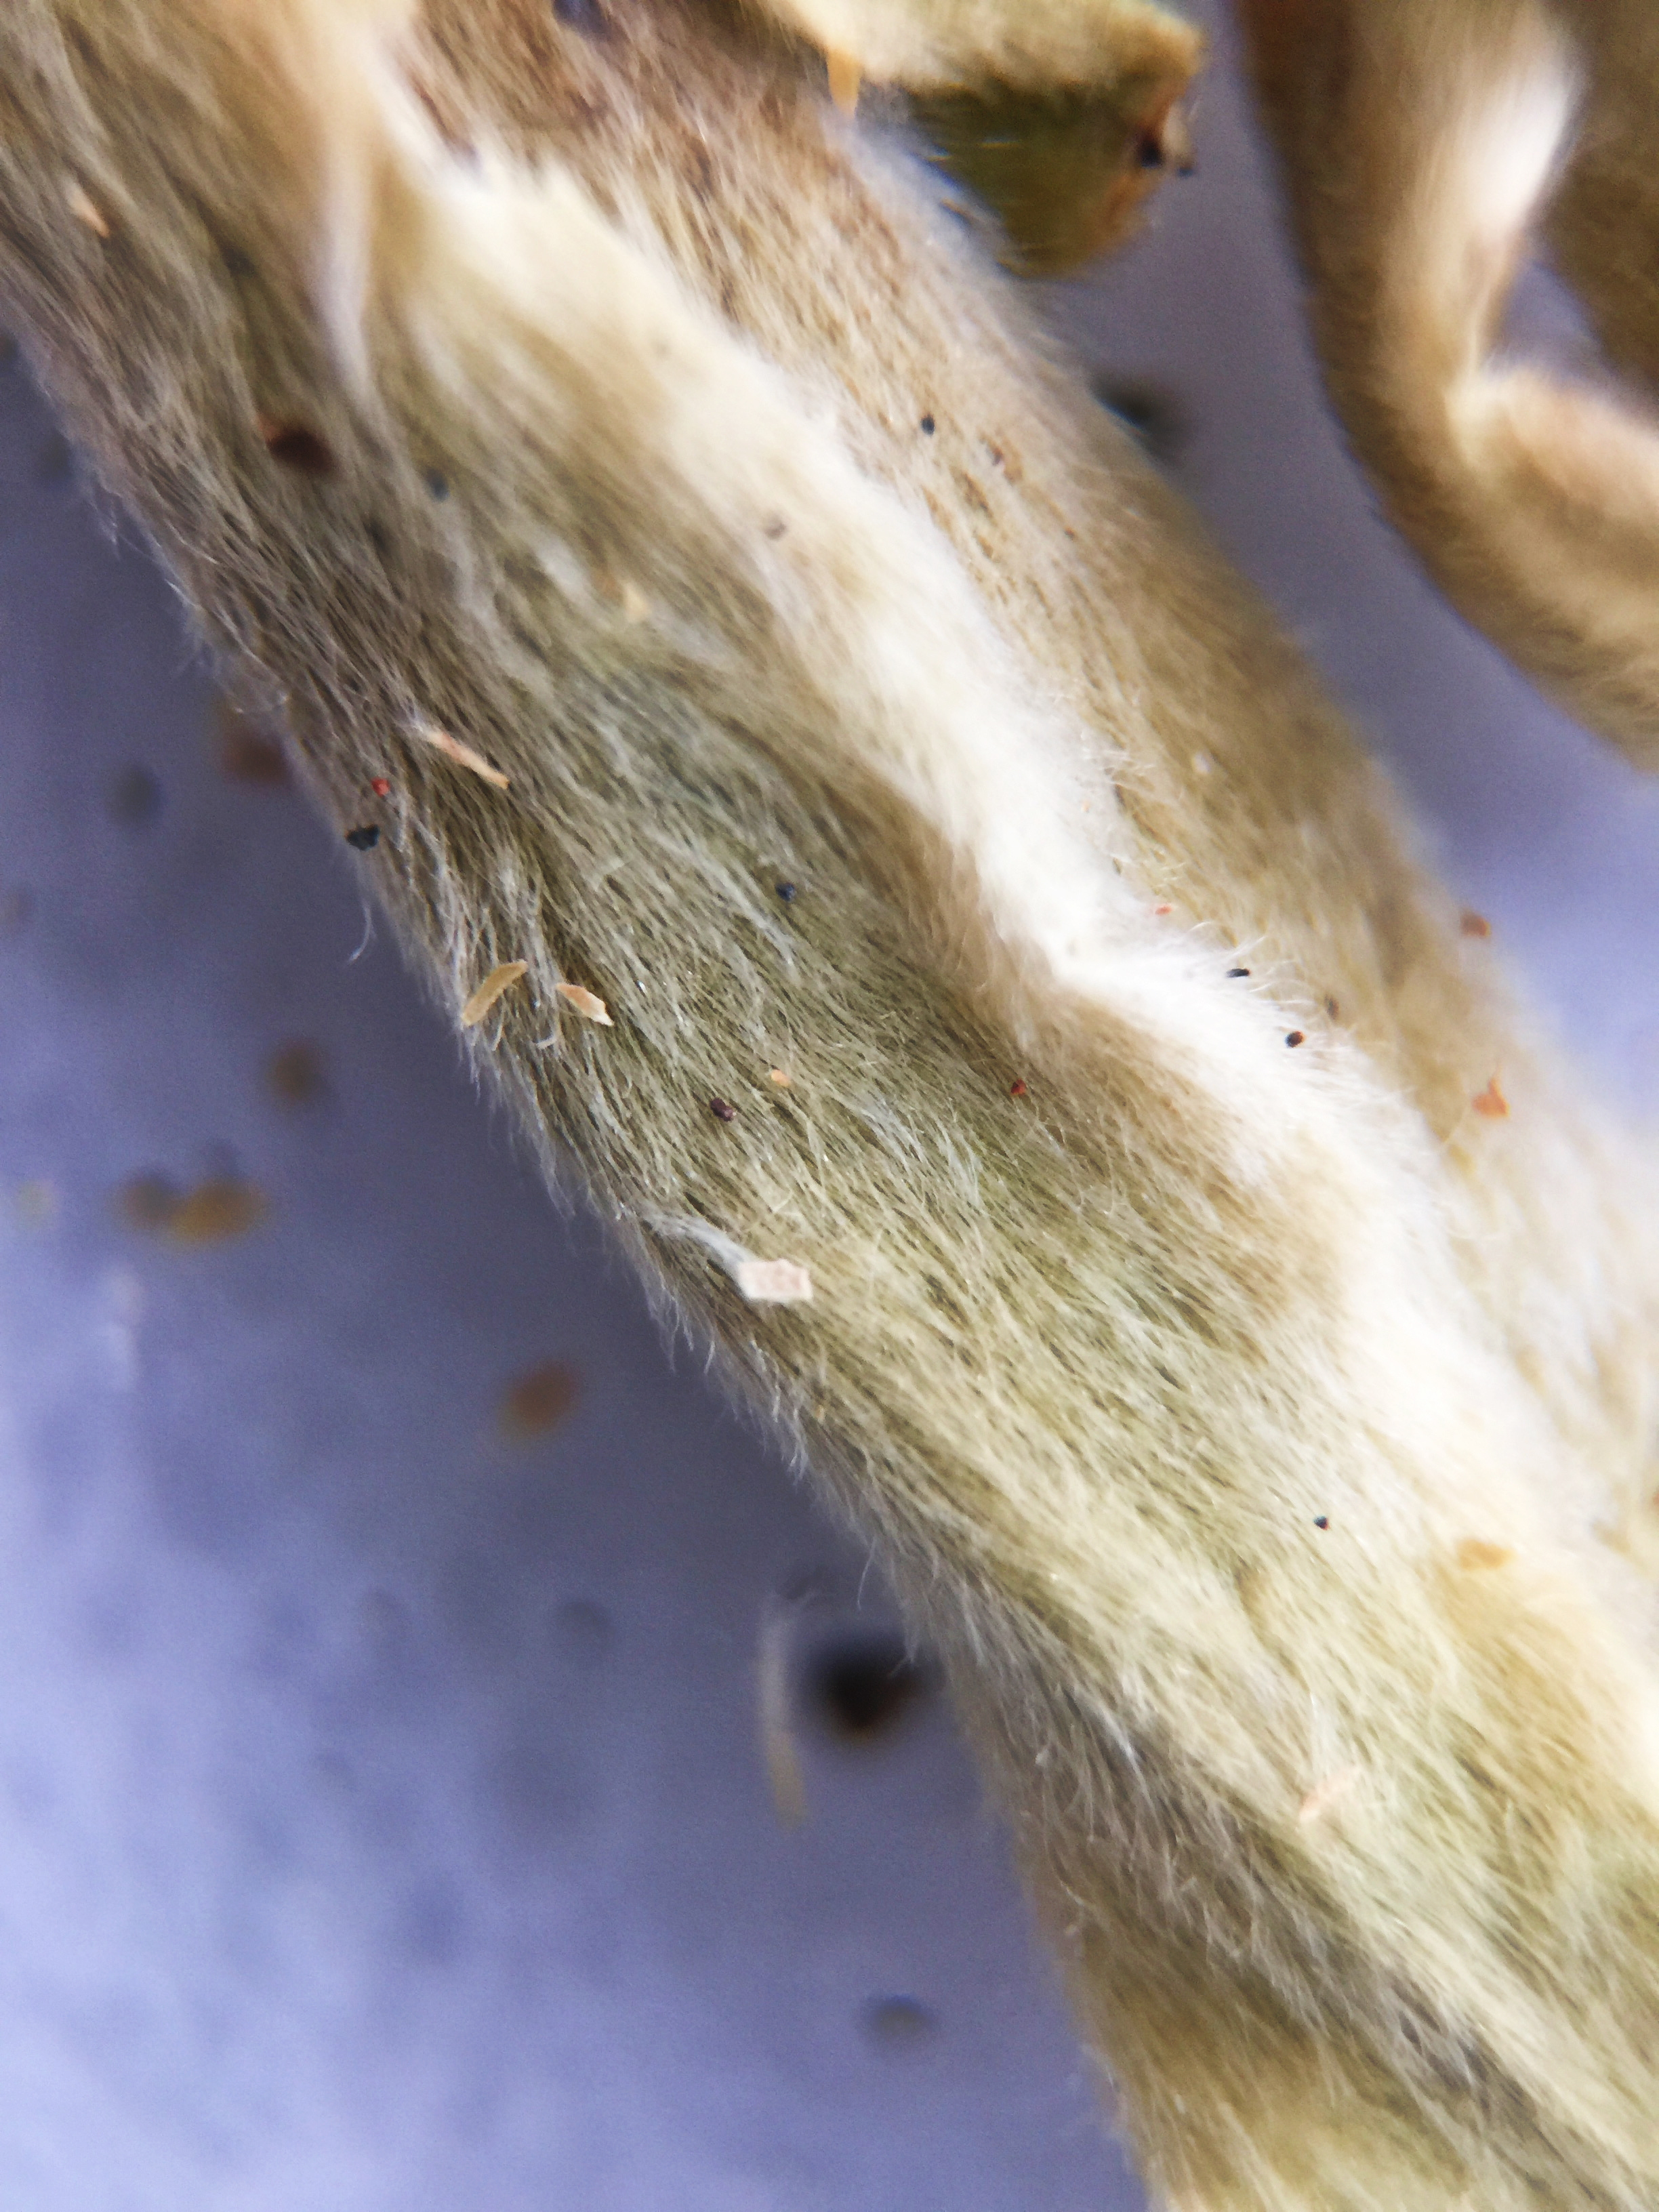 Photograph of Silver Bud Ya Bao (Tea Source) ~ loose leaf Macro 21x by Jocilyn Mors is licensed under a Creative Commons Attribution-NonCommercial-ShareAlike 4.0 International License.